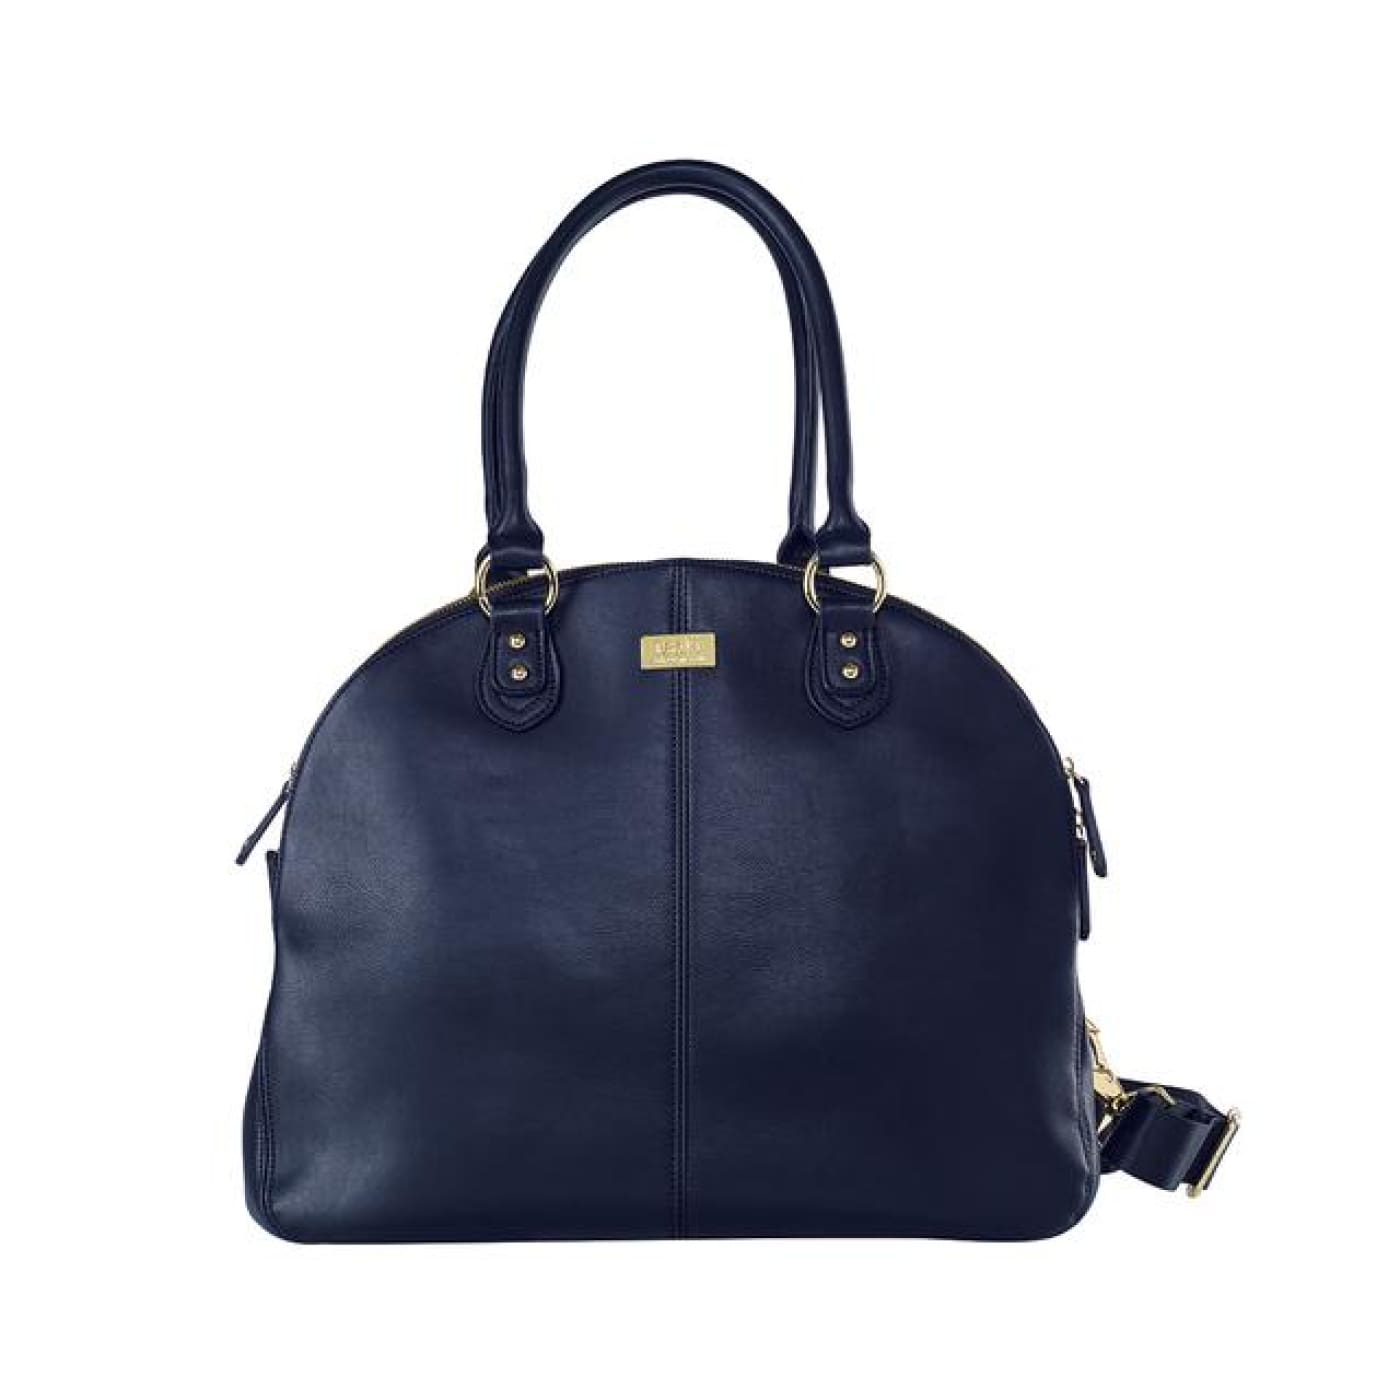 Isoki Madame Polly Esperence - Navy - ON THE GO - NAPPY BAGS/LUGGAGE